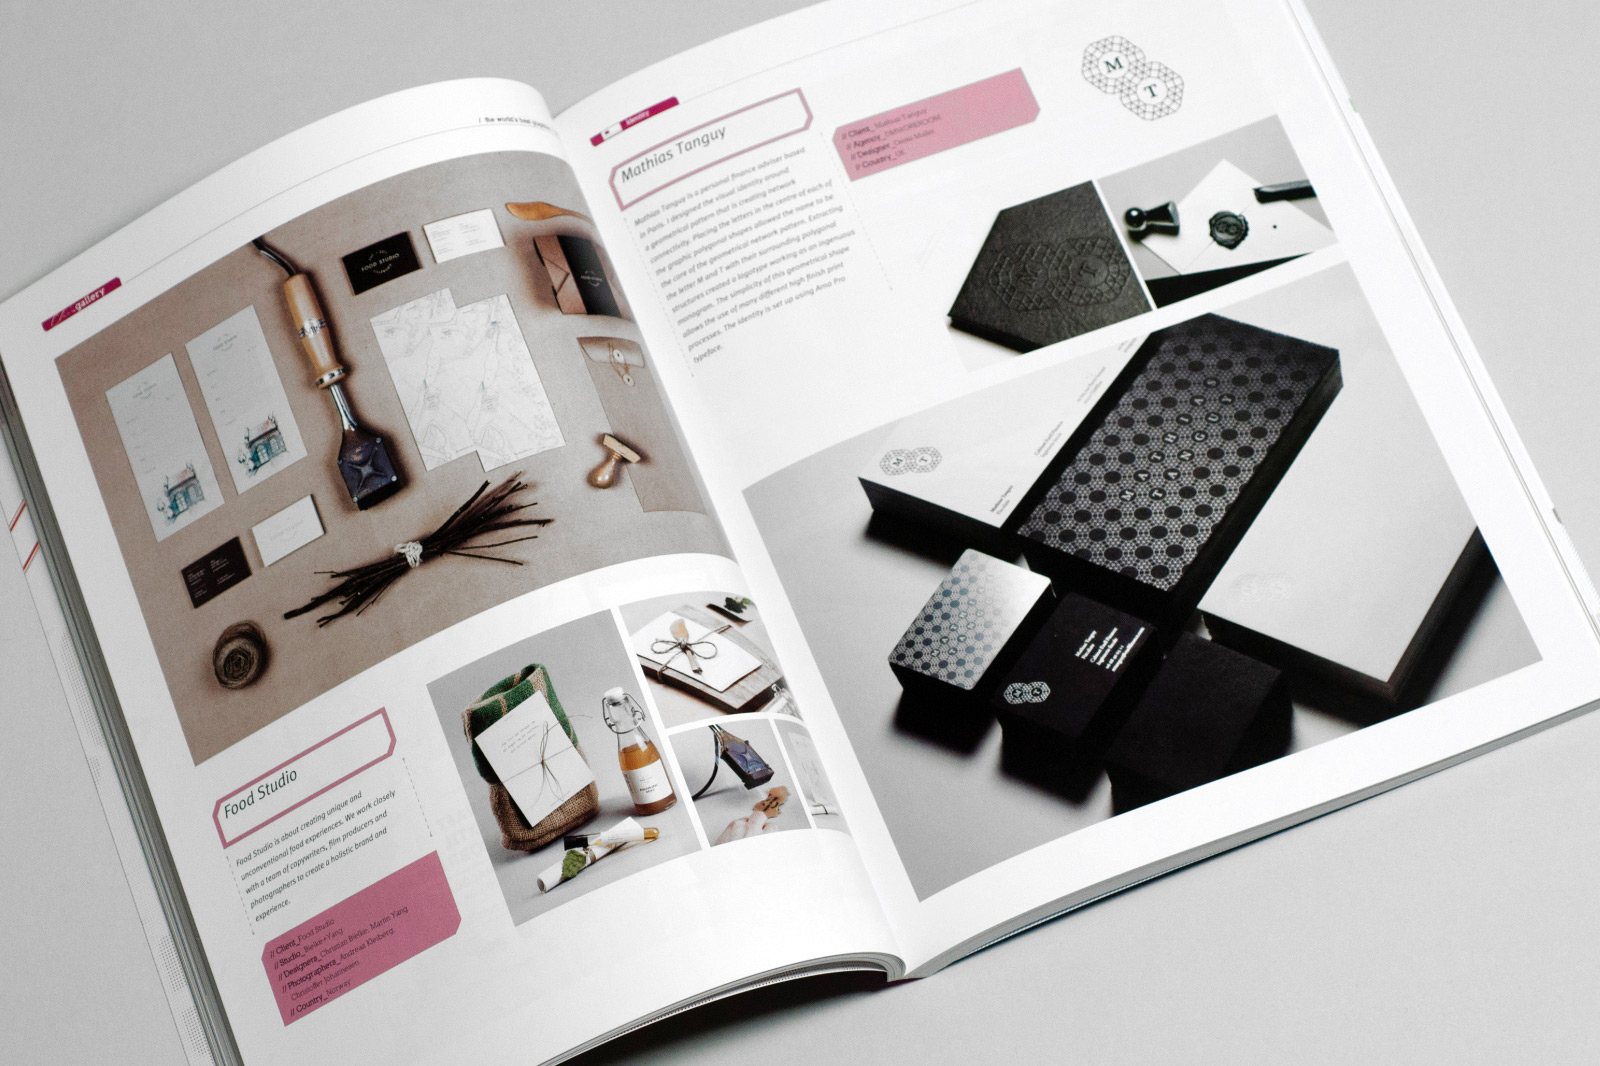 Mathias Tanguy visual identity by Europa Studio published in Chois Gallery, Volume 25, p. 71–72, 2014